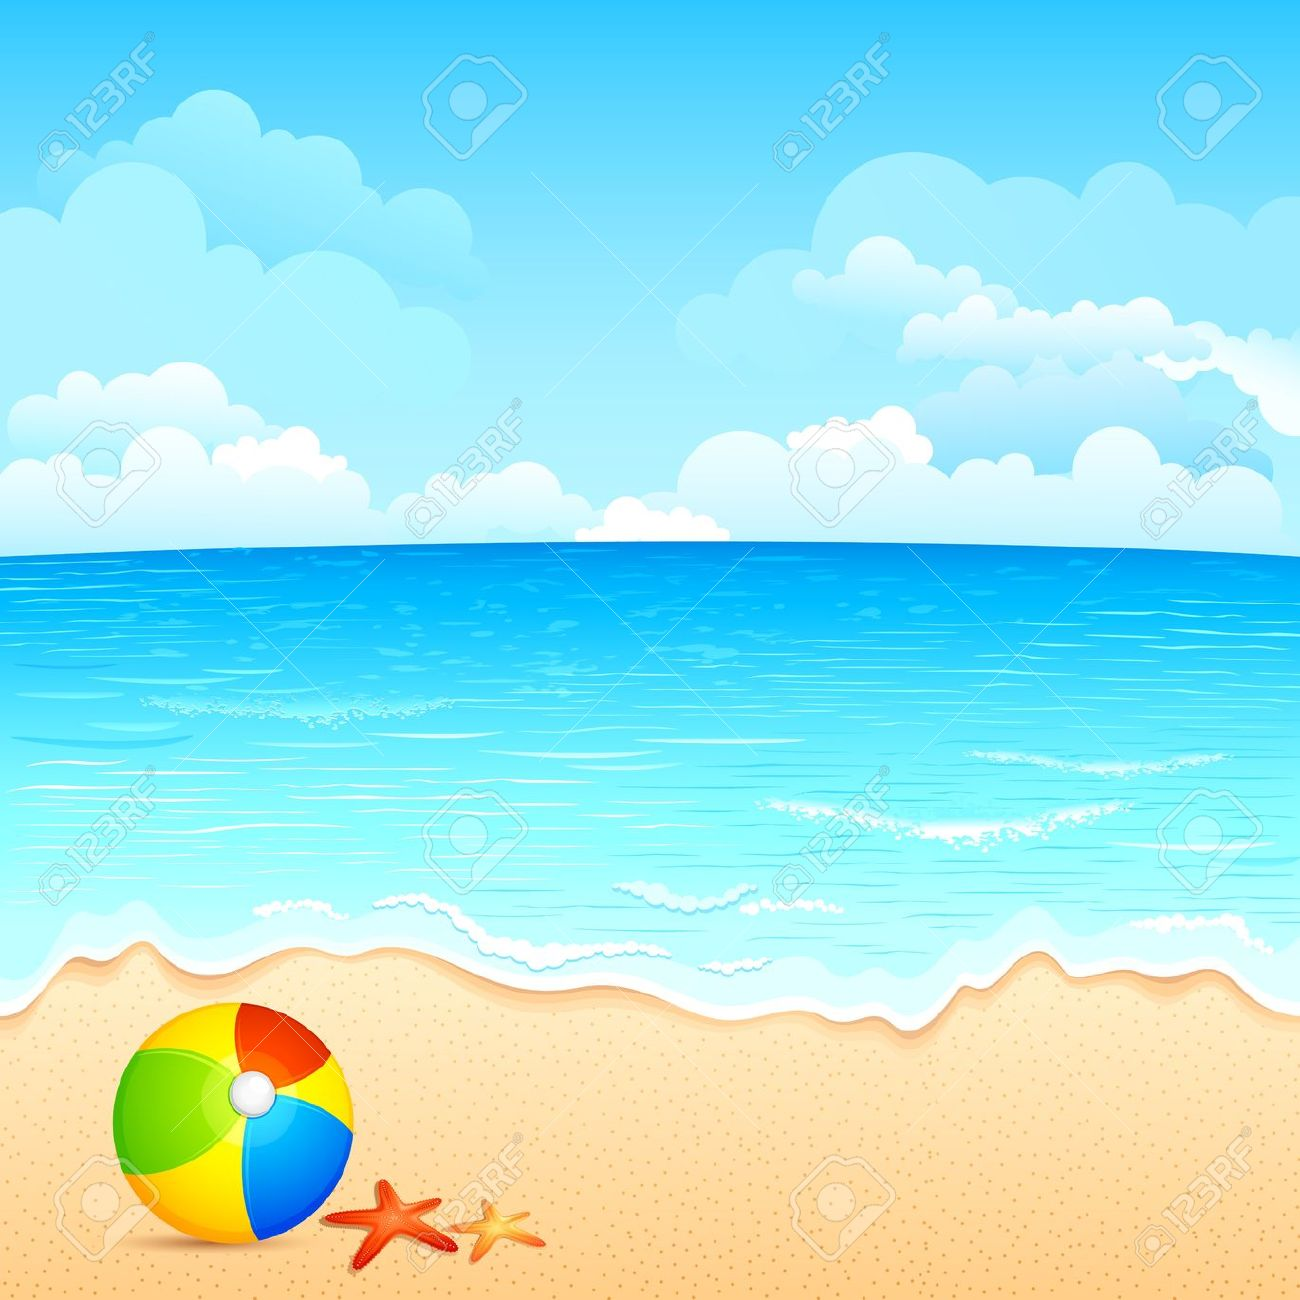 Free clipart beach scenes royalty free download Free Beach Scene Cliparts, Download Free Clip Art, Free Clip Art on ... royalty free download